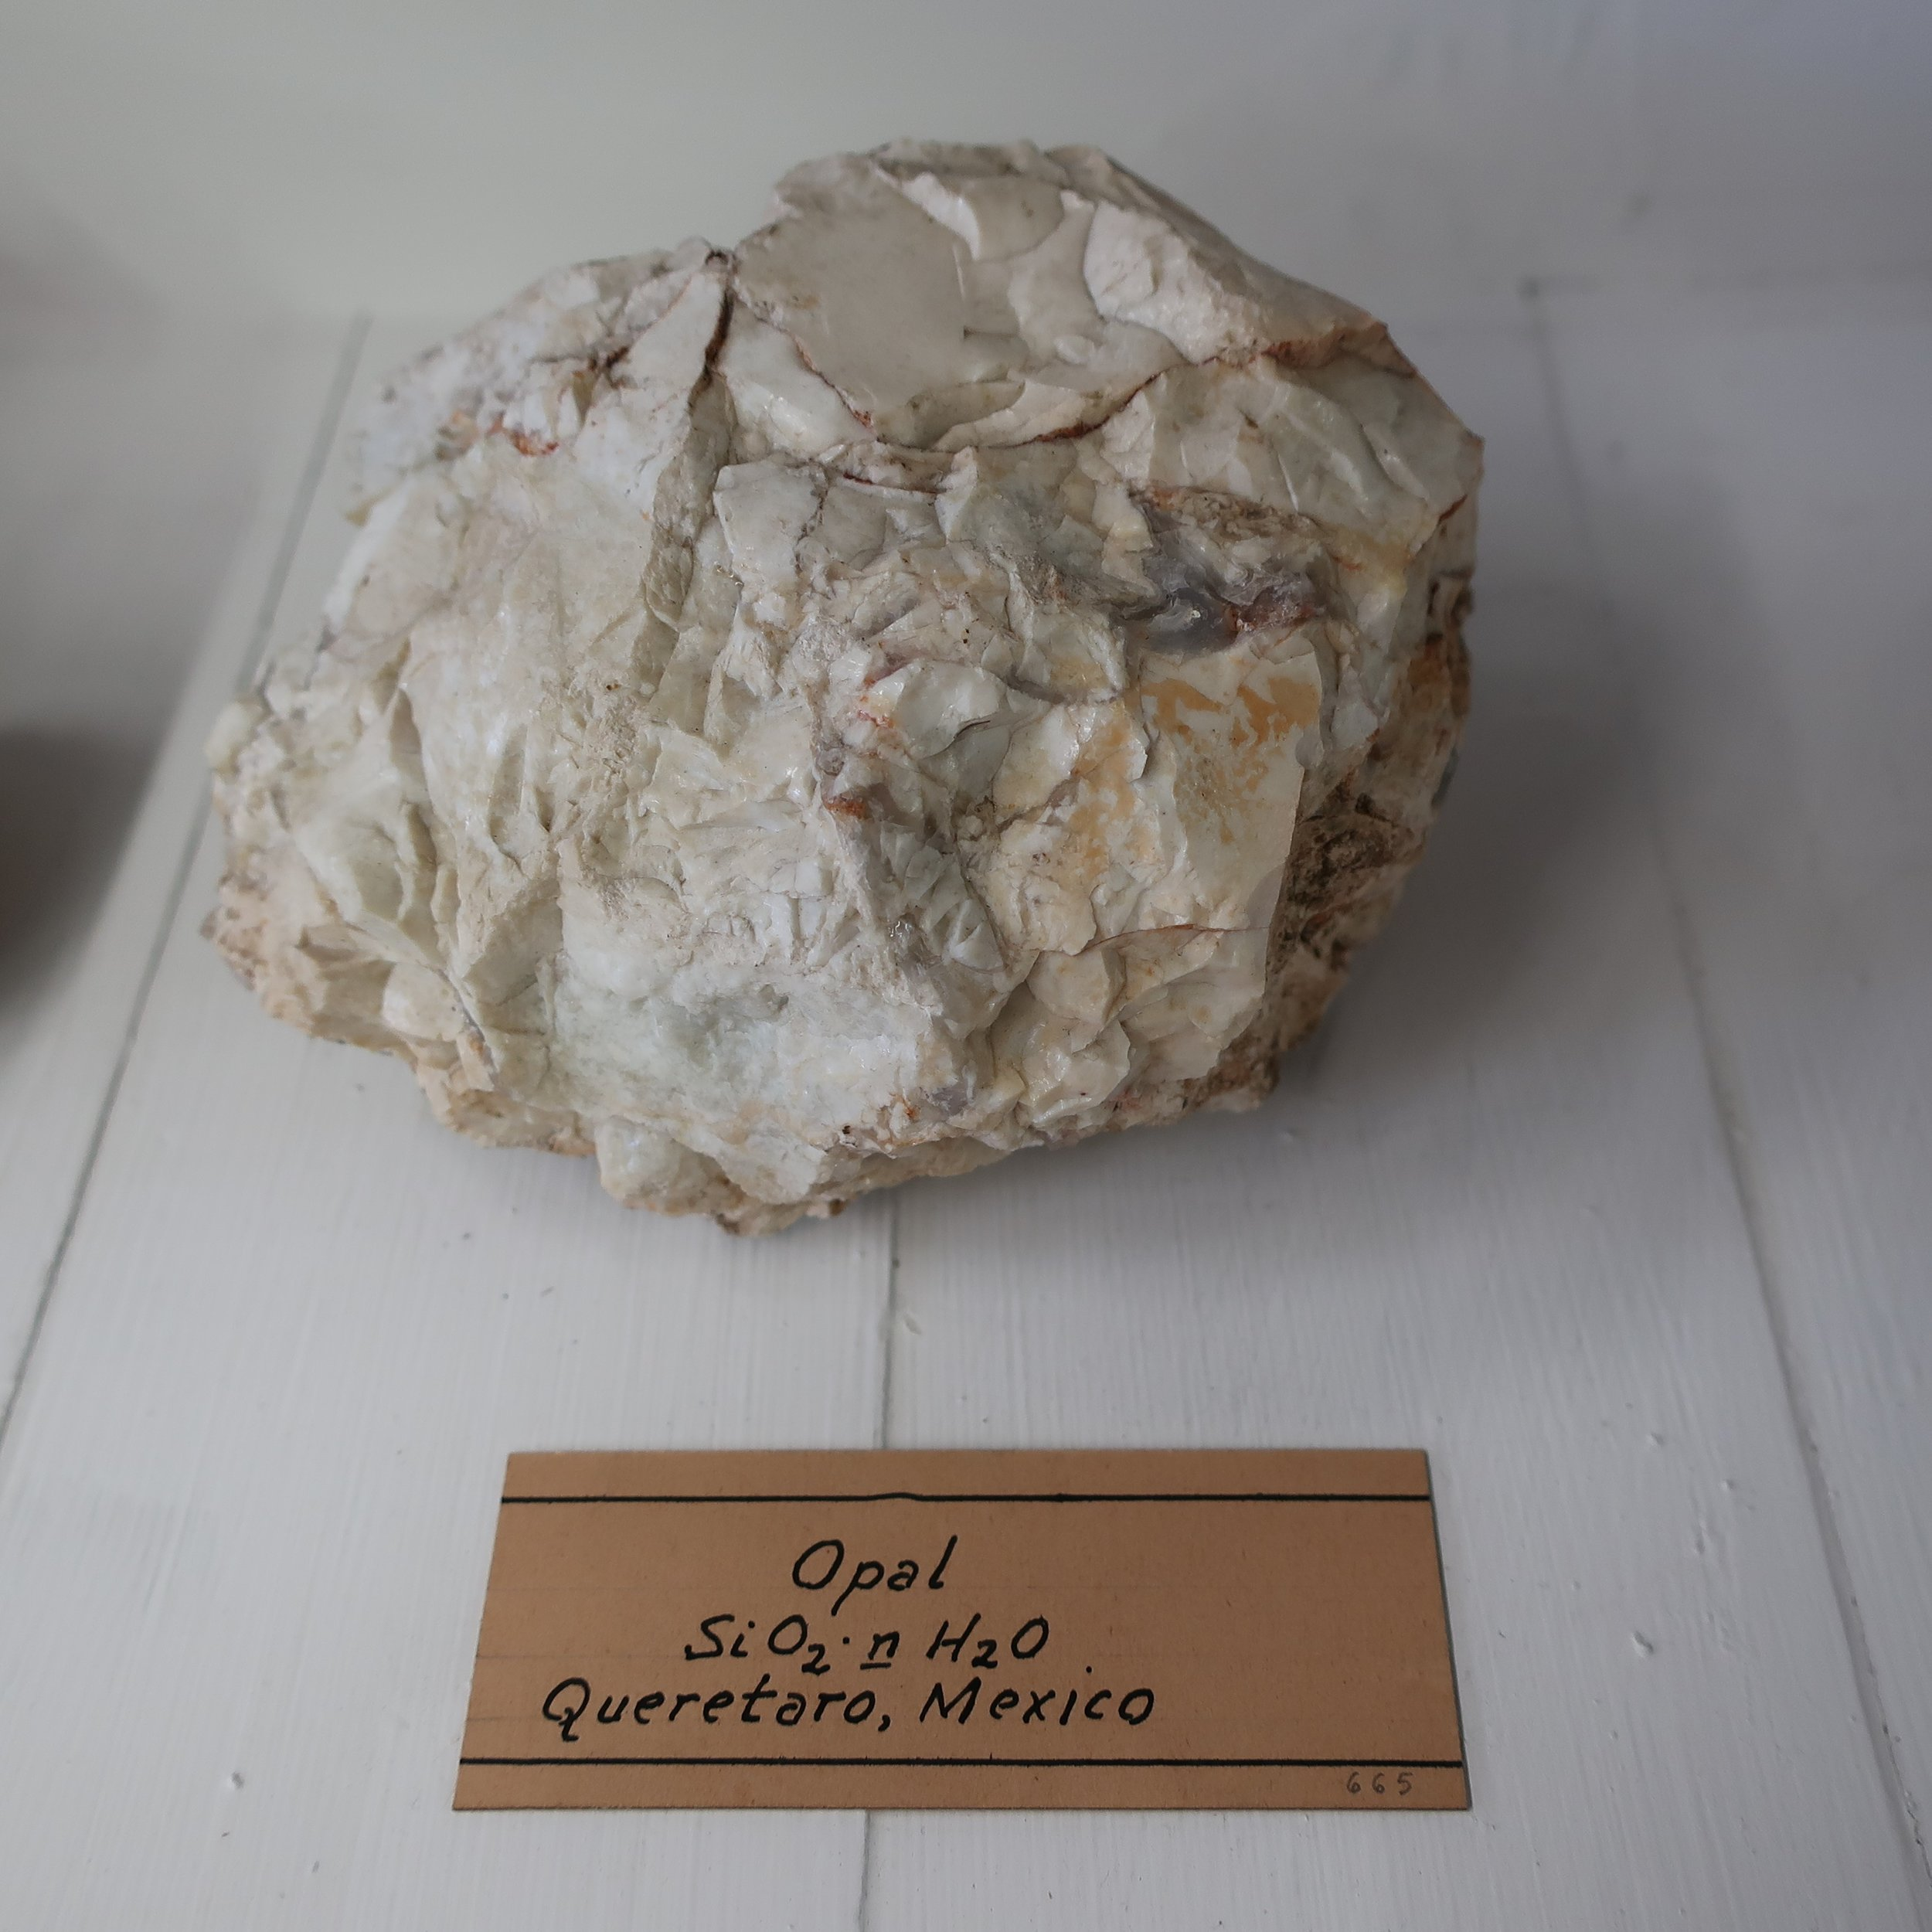 """Opal ,   like quartz, consists chiefly of Silica and water, but analysis generally indicates a greater quantity of the latter than in quartz, none of its varieties give fire with the steel. Specific G 2.09. This beautiful mineral is of a white bluish and yellowish white colour, and when received by transmitted light is yellow. It exhibits brilliant and changeable reflections of green, blue, yellow, and red. This play of colours has not been satisfactorily accounted for. Sir David Brewster thought it was owing to the refraction and reflection of light in certain openings in the interior of the mass, which are not fissures, but possess a uniform shape, it is translucent, fracture conchoidal and lustre resinous. Easily broken, but scratches glass. Before the blow pipe, it decrepitates and looses its colour. It consists of 90 silica and 10 water. It occurs accompanied with common opal, in porphory, & in the trap rocks of Hungary. The most splendid specemens have been brought from the province of Honduras of considerable size."""